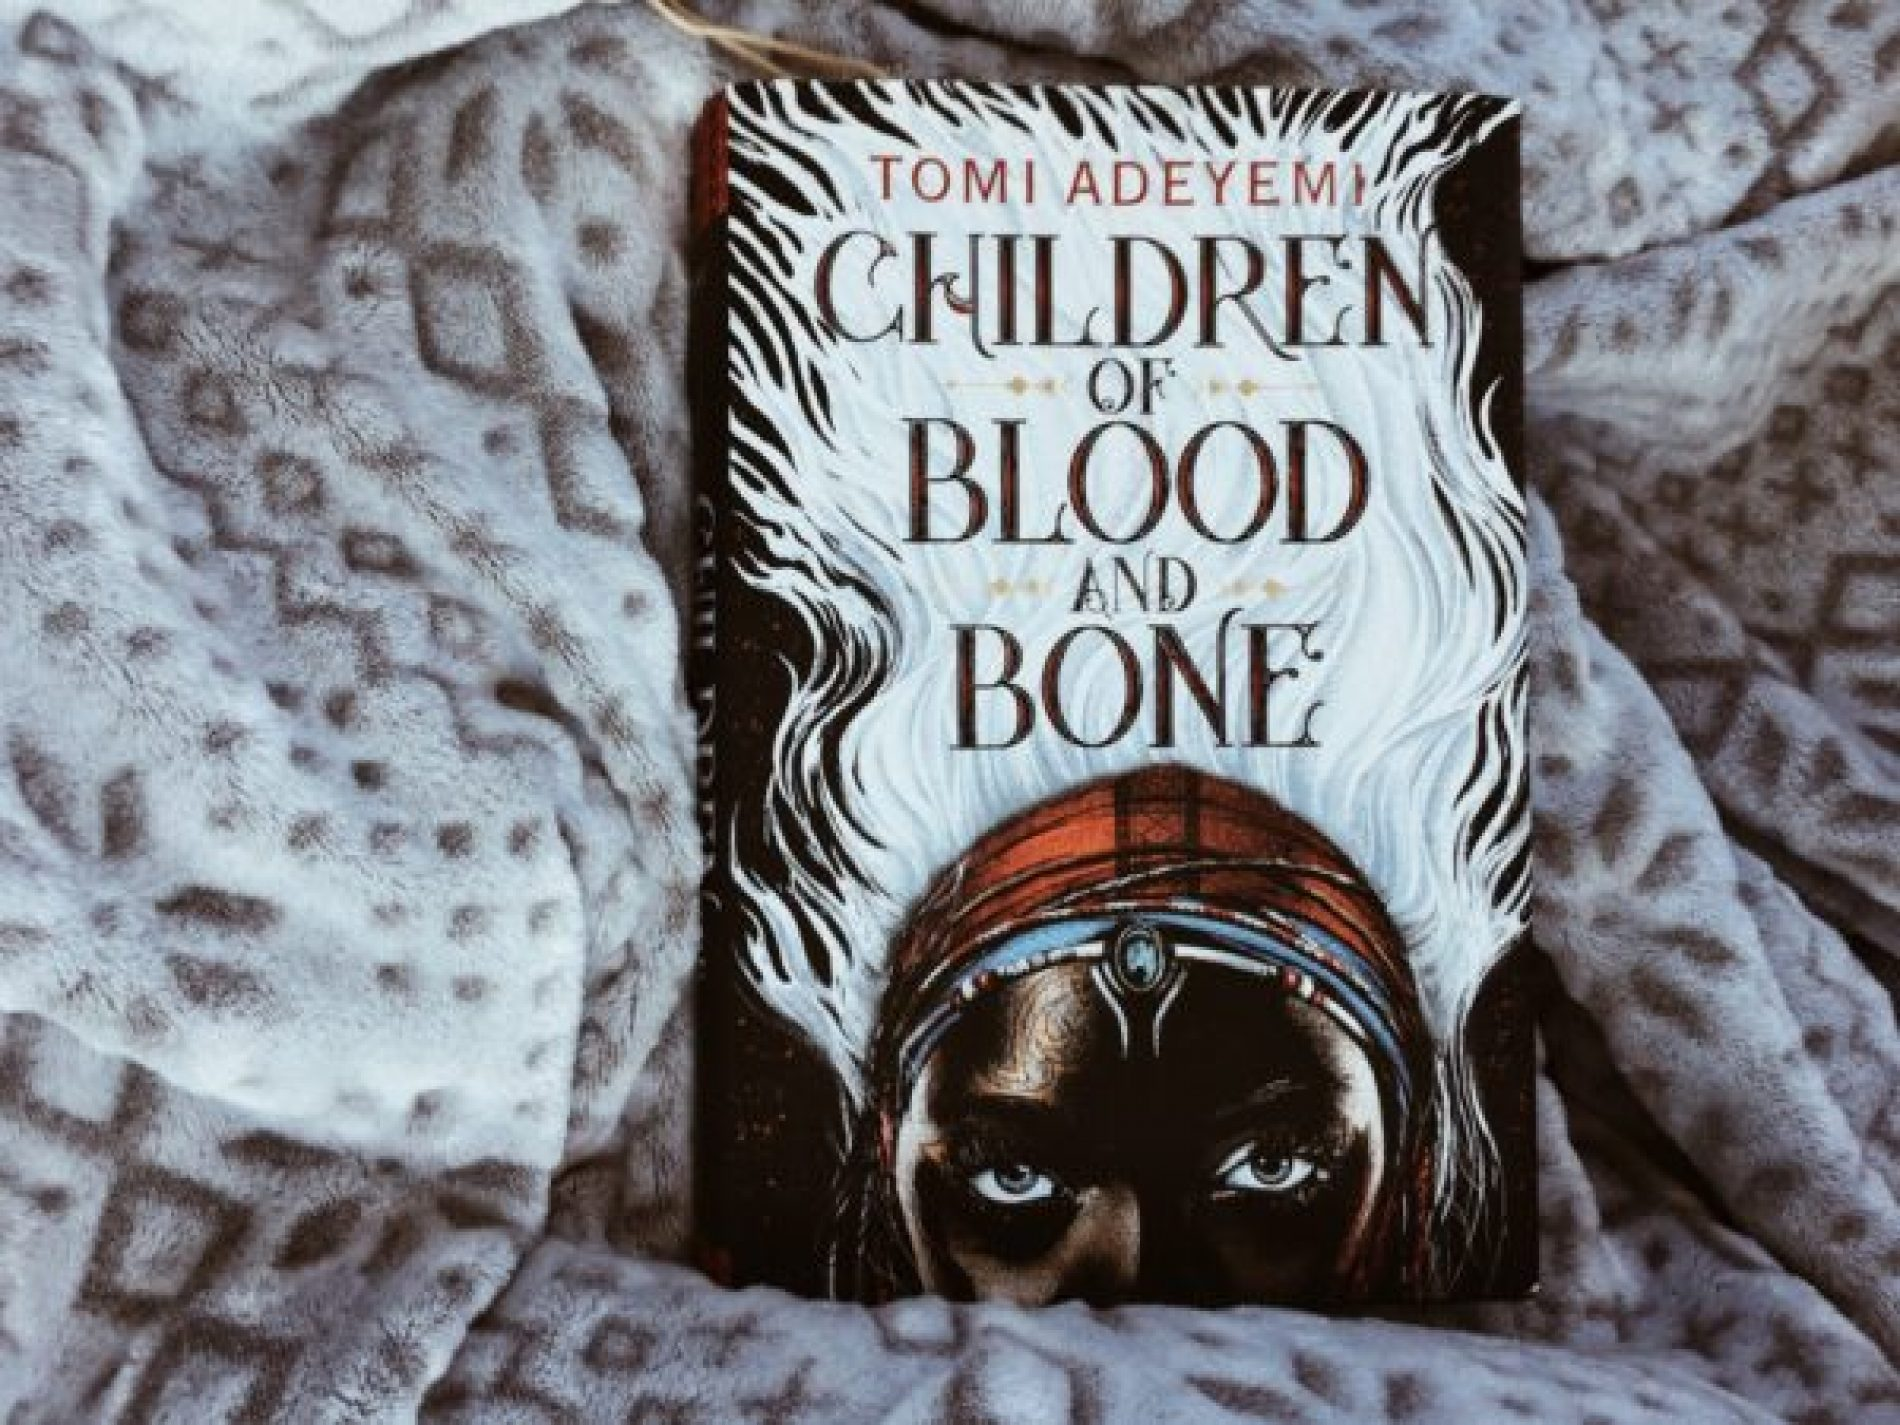 THE ACTUAL CHILDREN OF BLOOD AND BONE